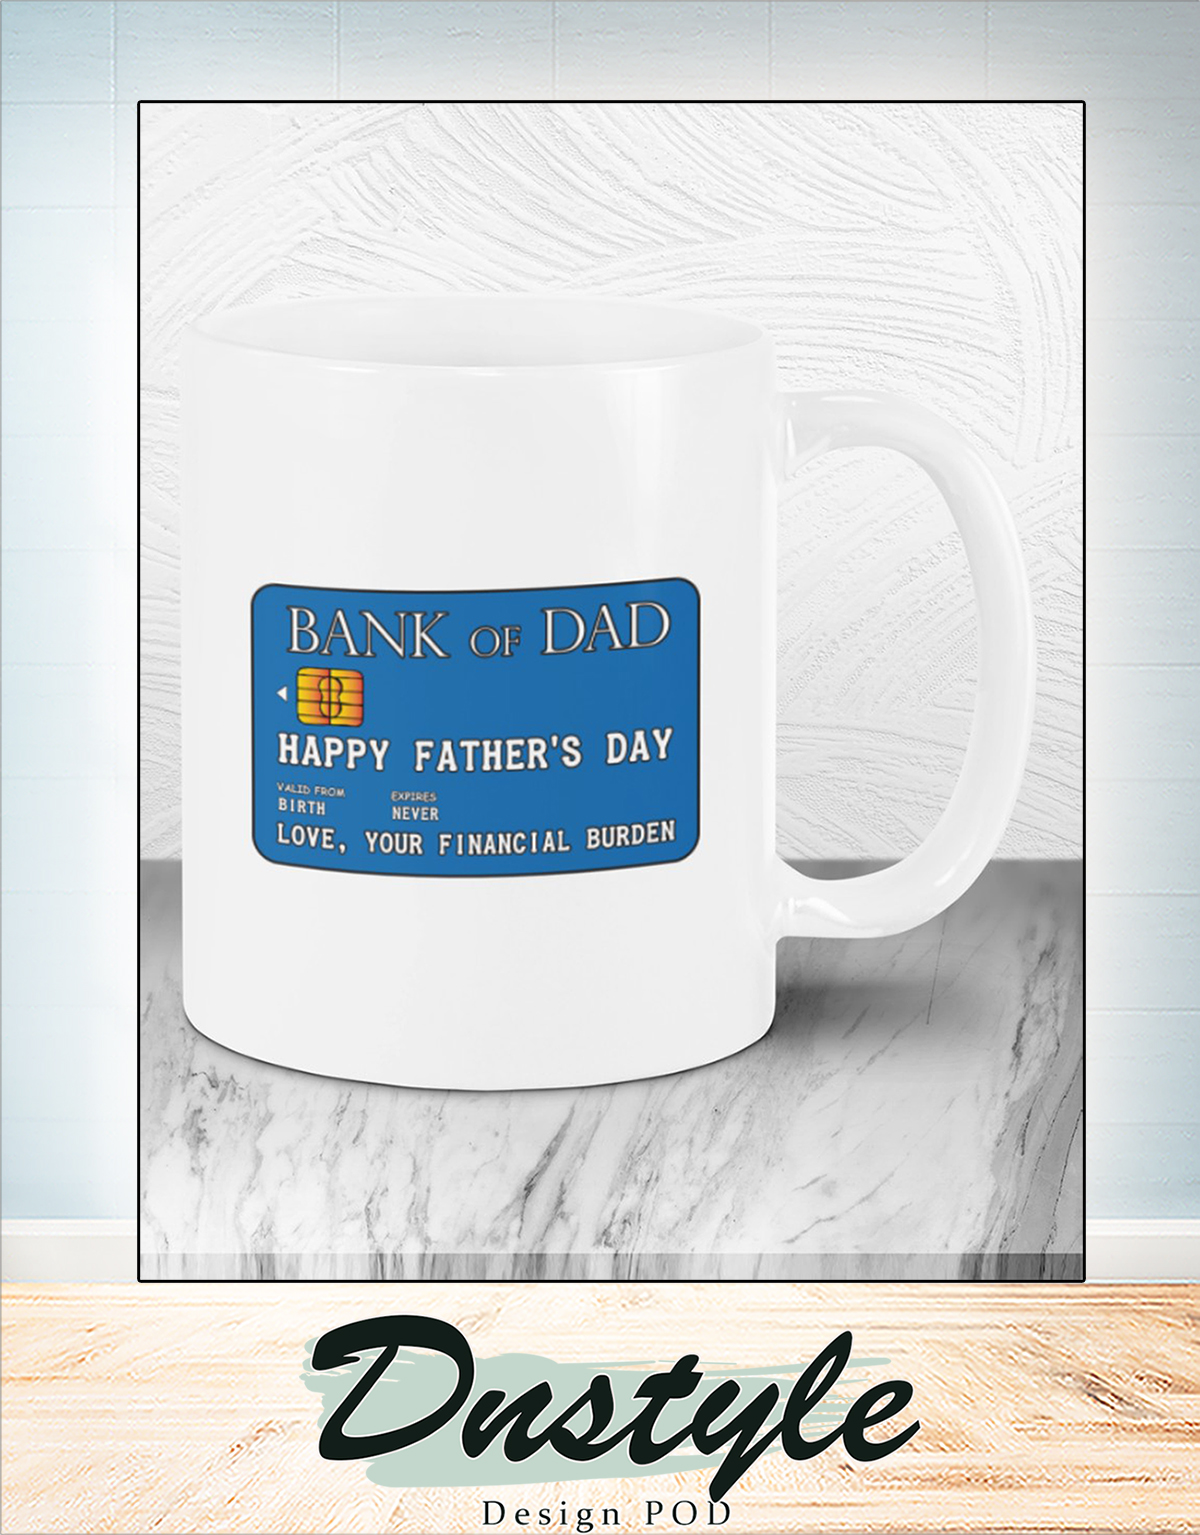 Bank of dad happy father's day mug 1